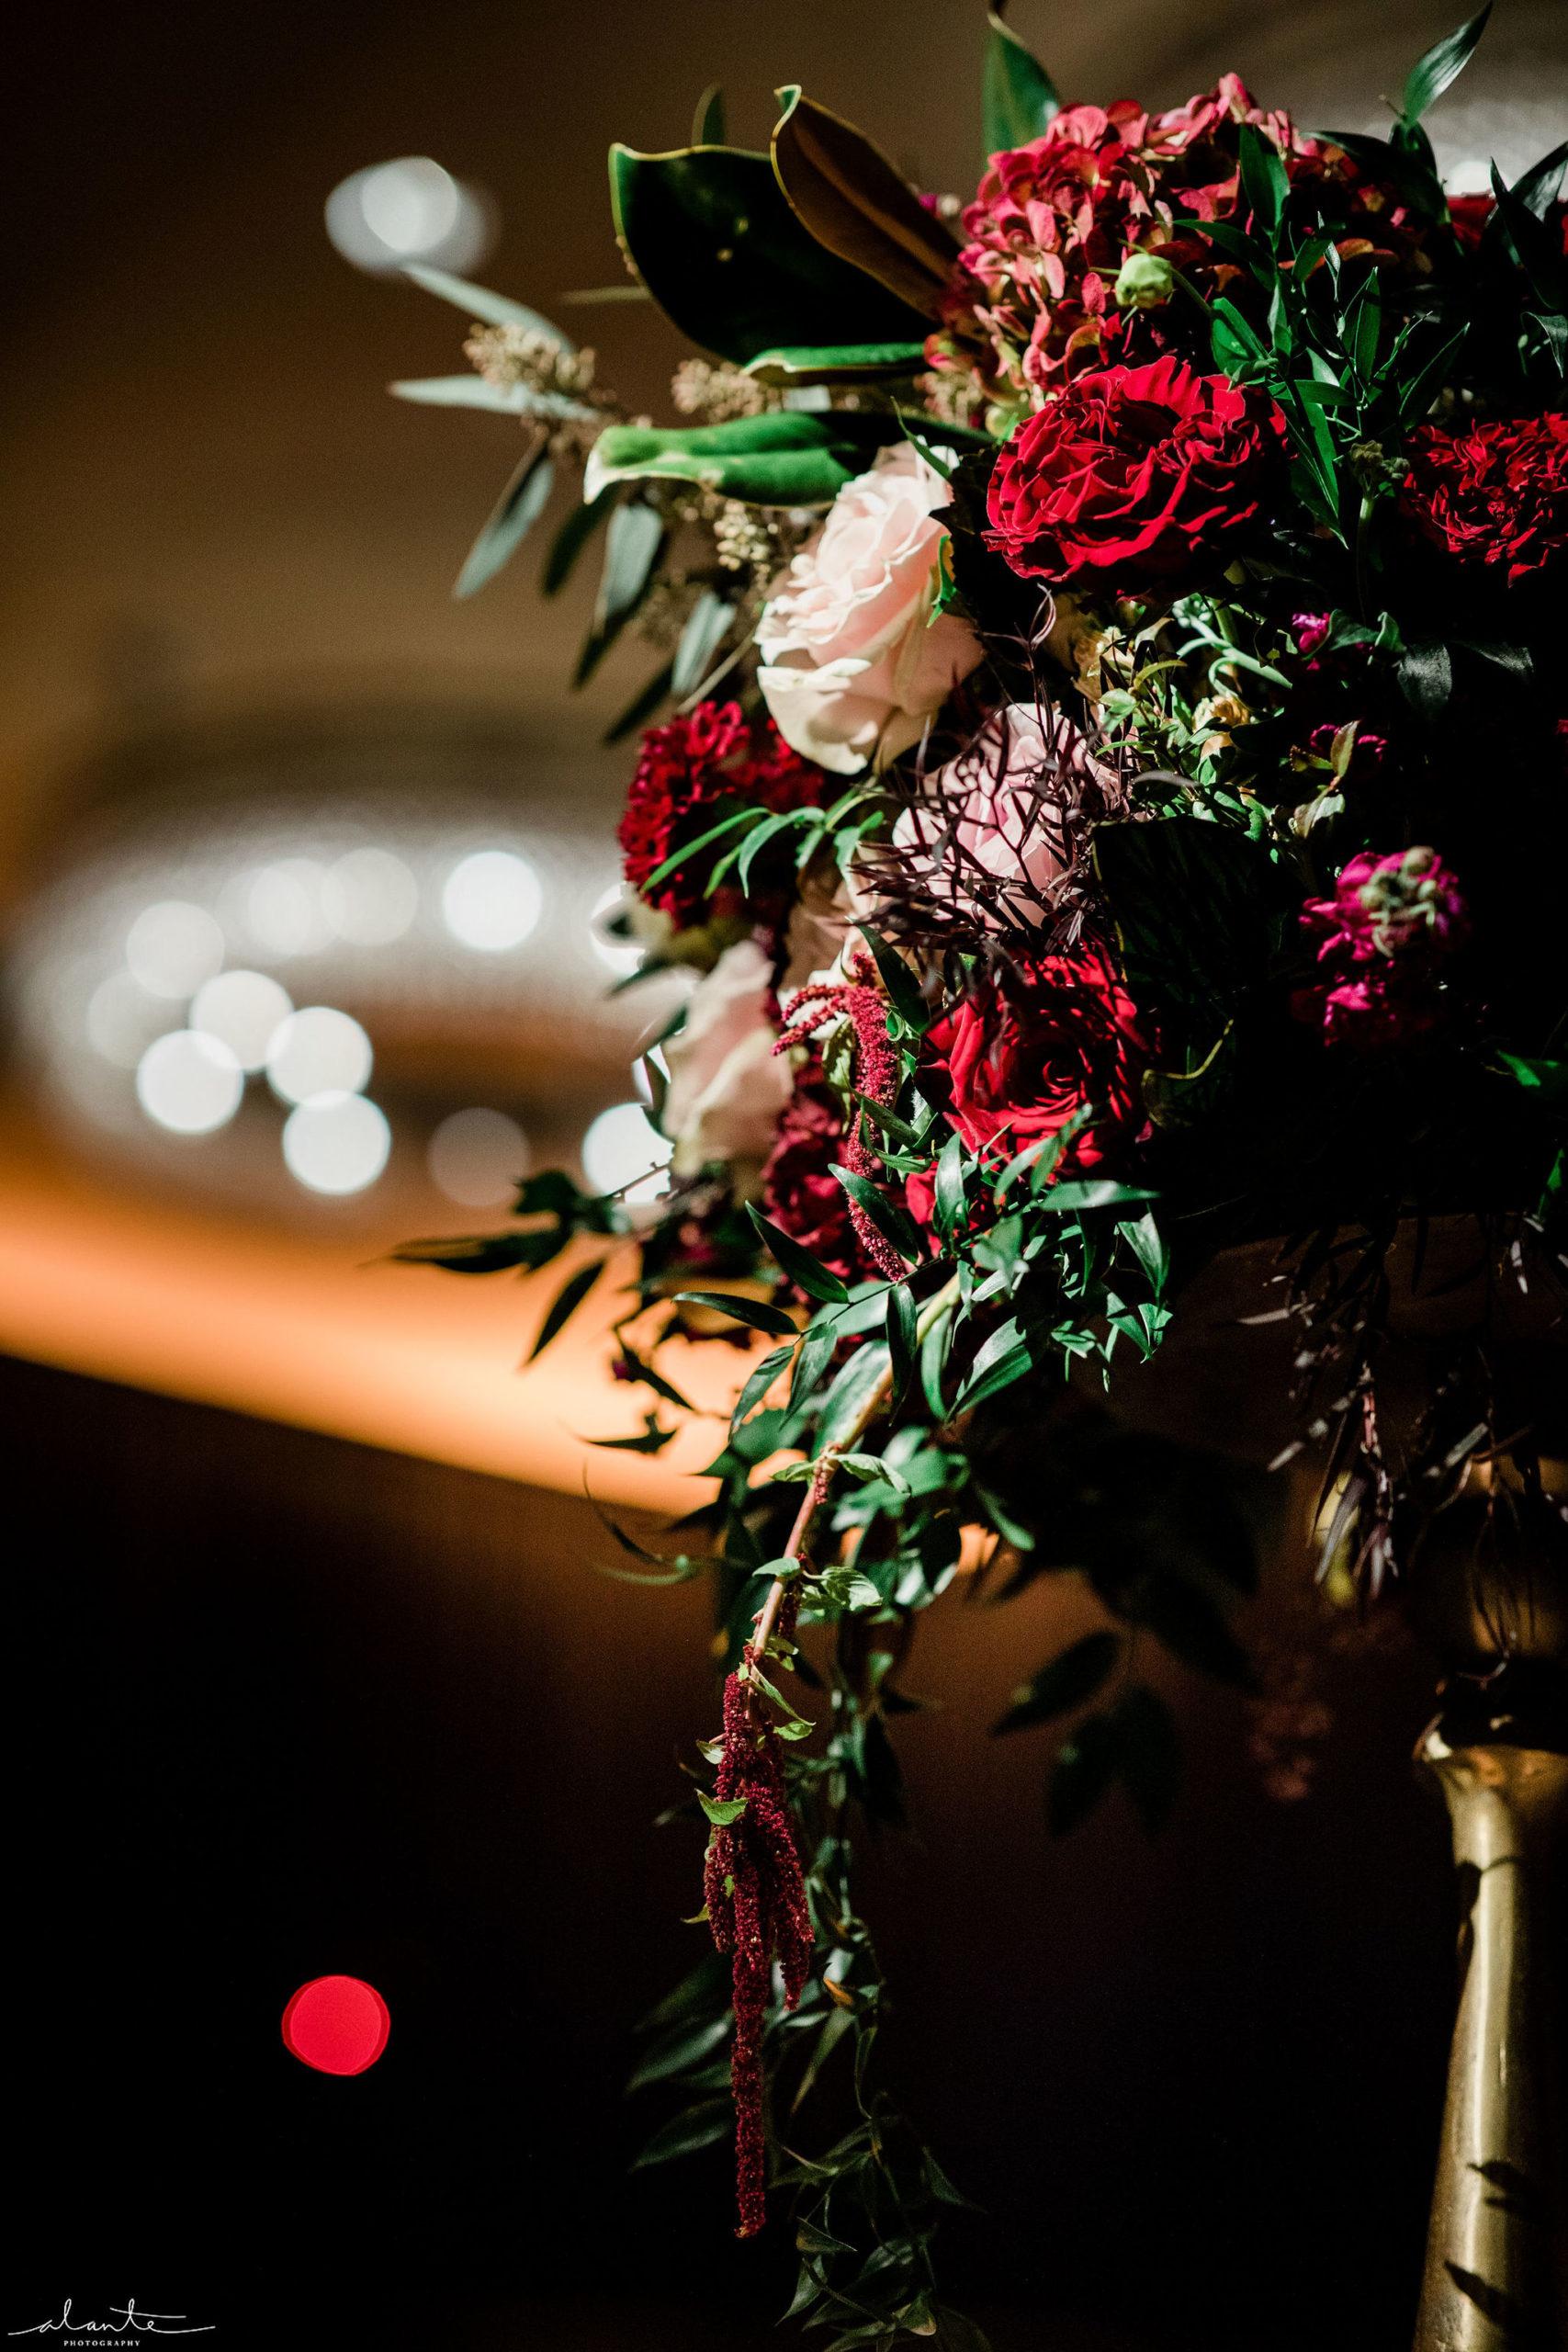 Red roses, antique hydrangea, stock, blush roses and lots of texture and foliages make a memorable winter floral arrangement.